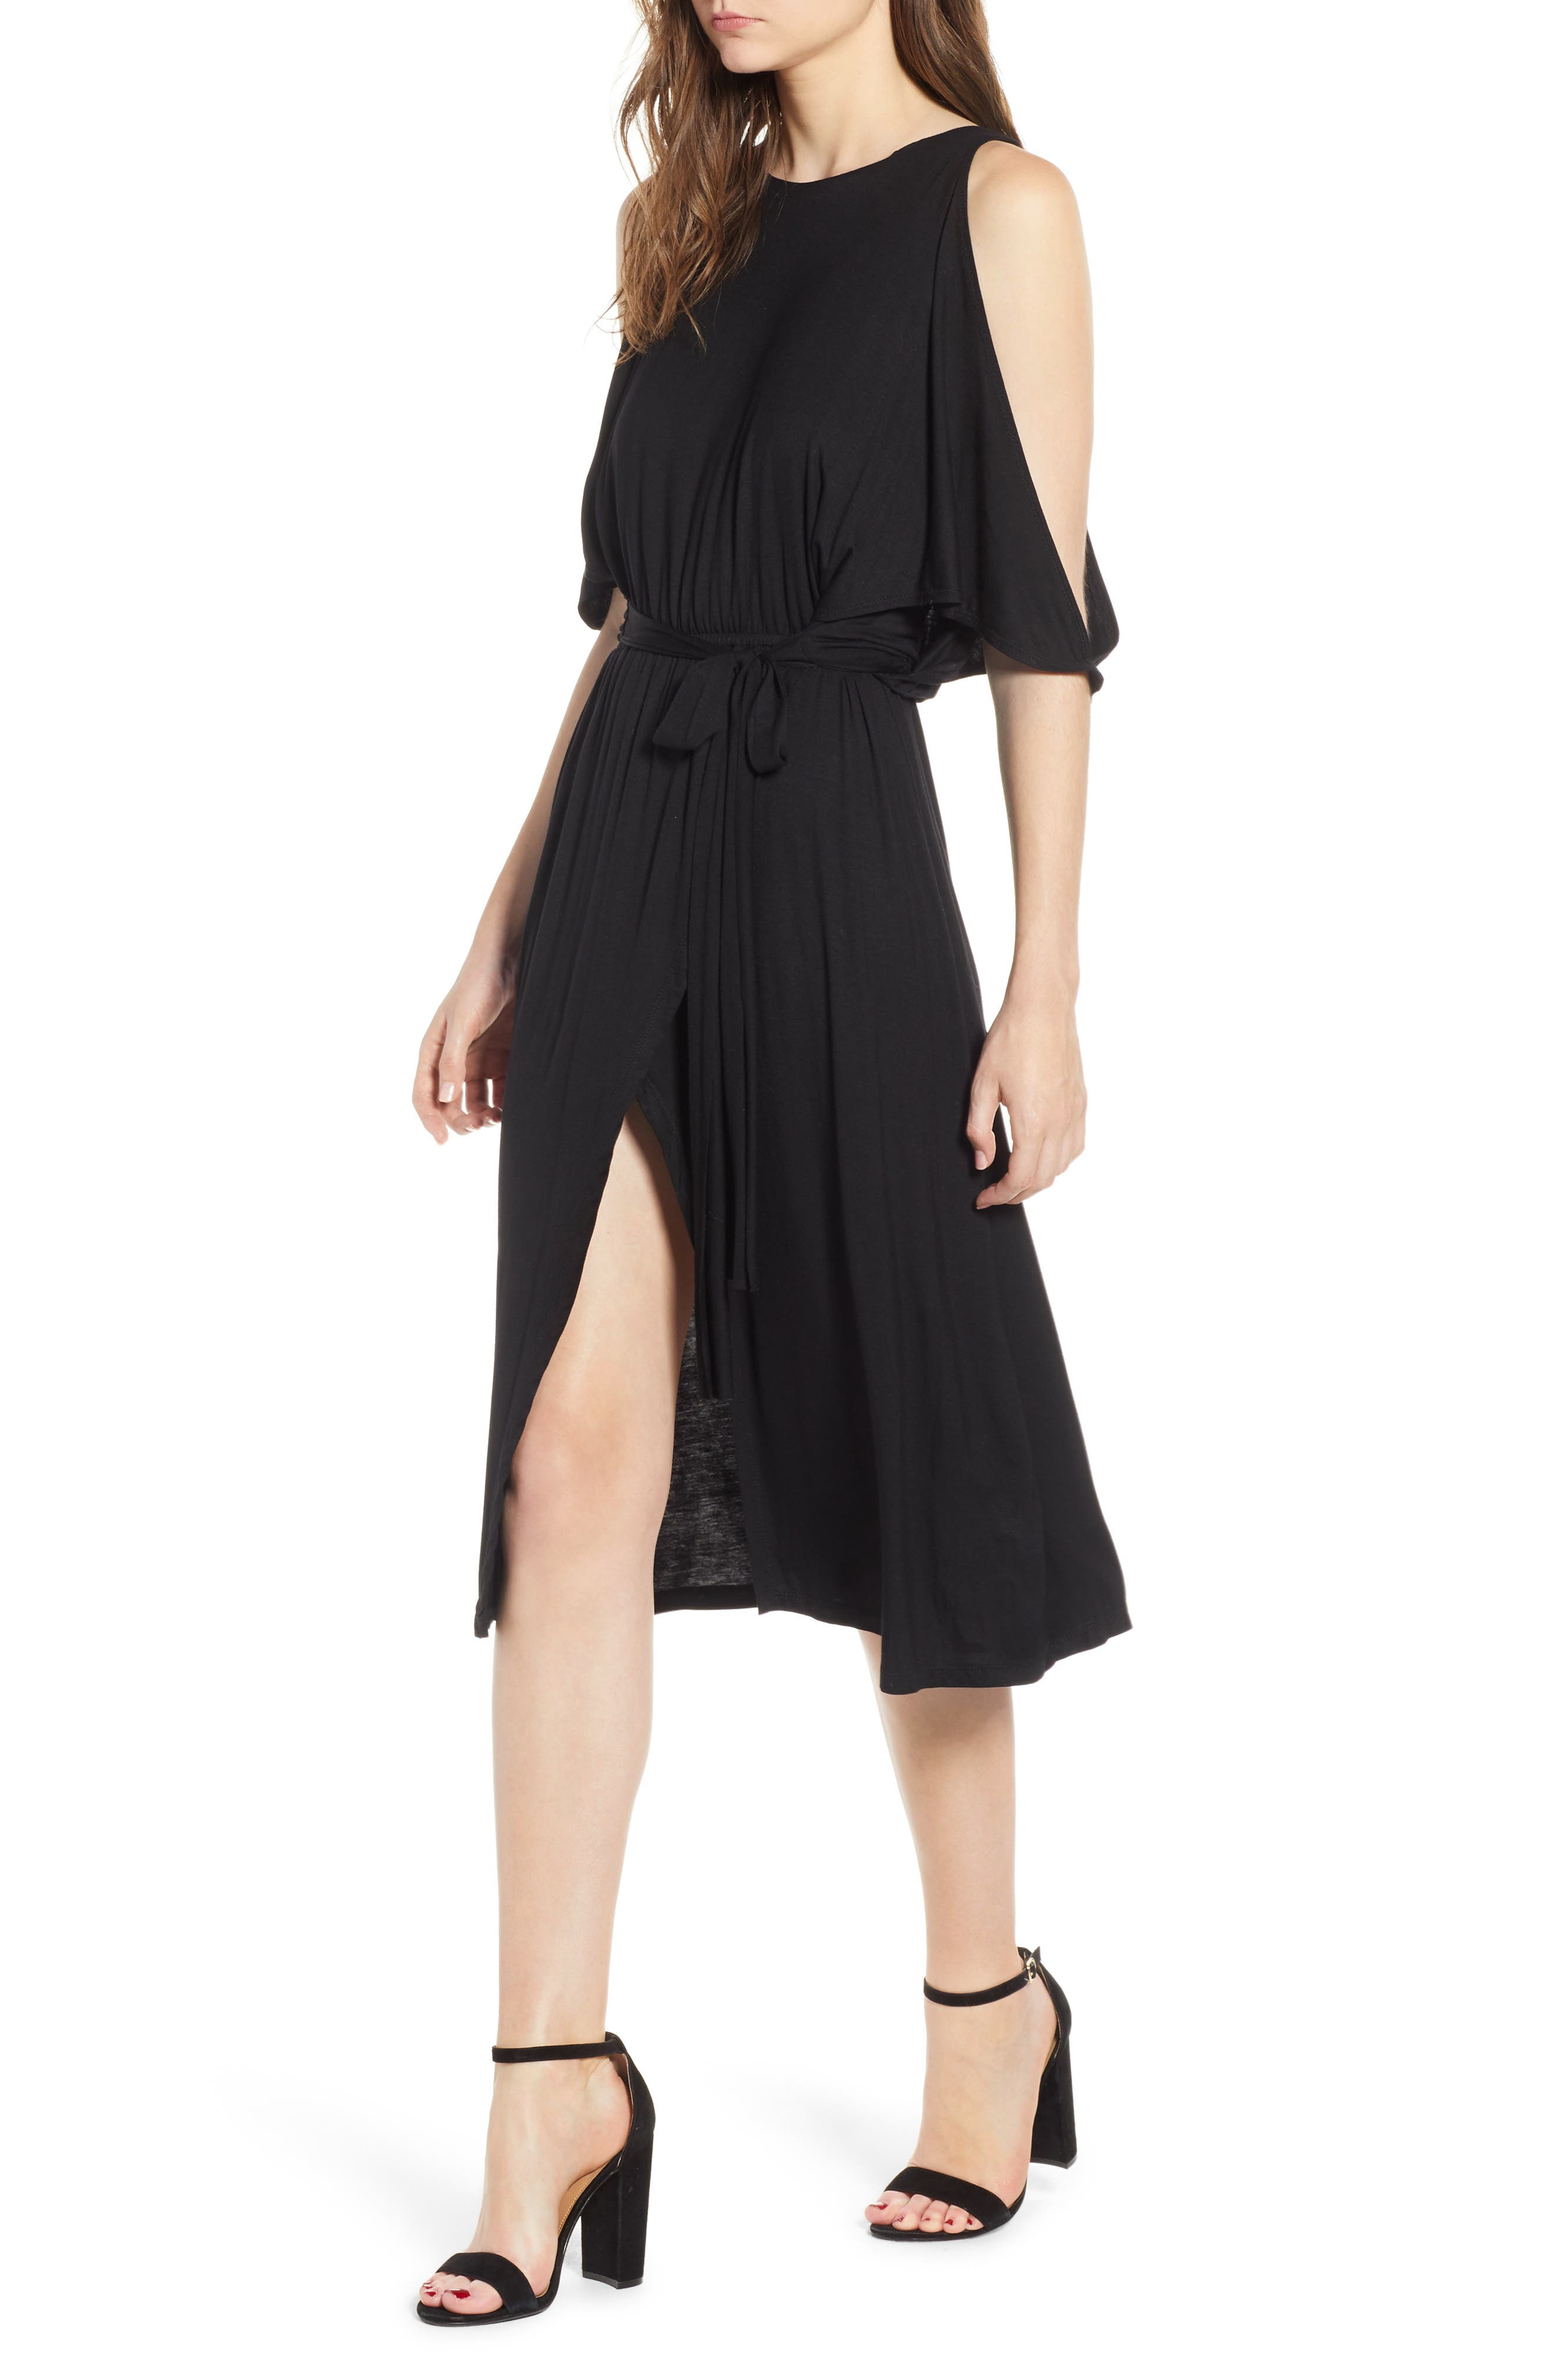 Bishop + Young Slit Sleeve Wrap Style Dress,                             Main thumbnail 1, color,                             Black